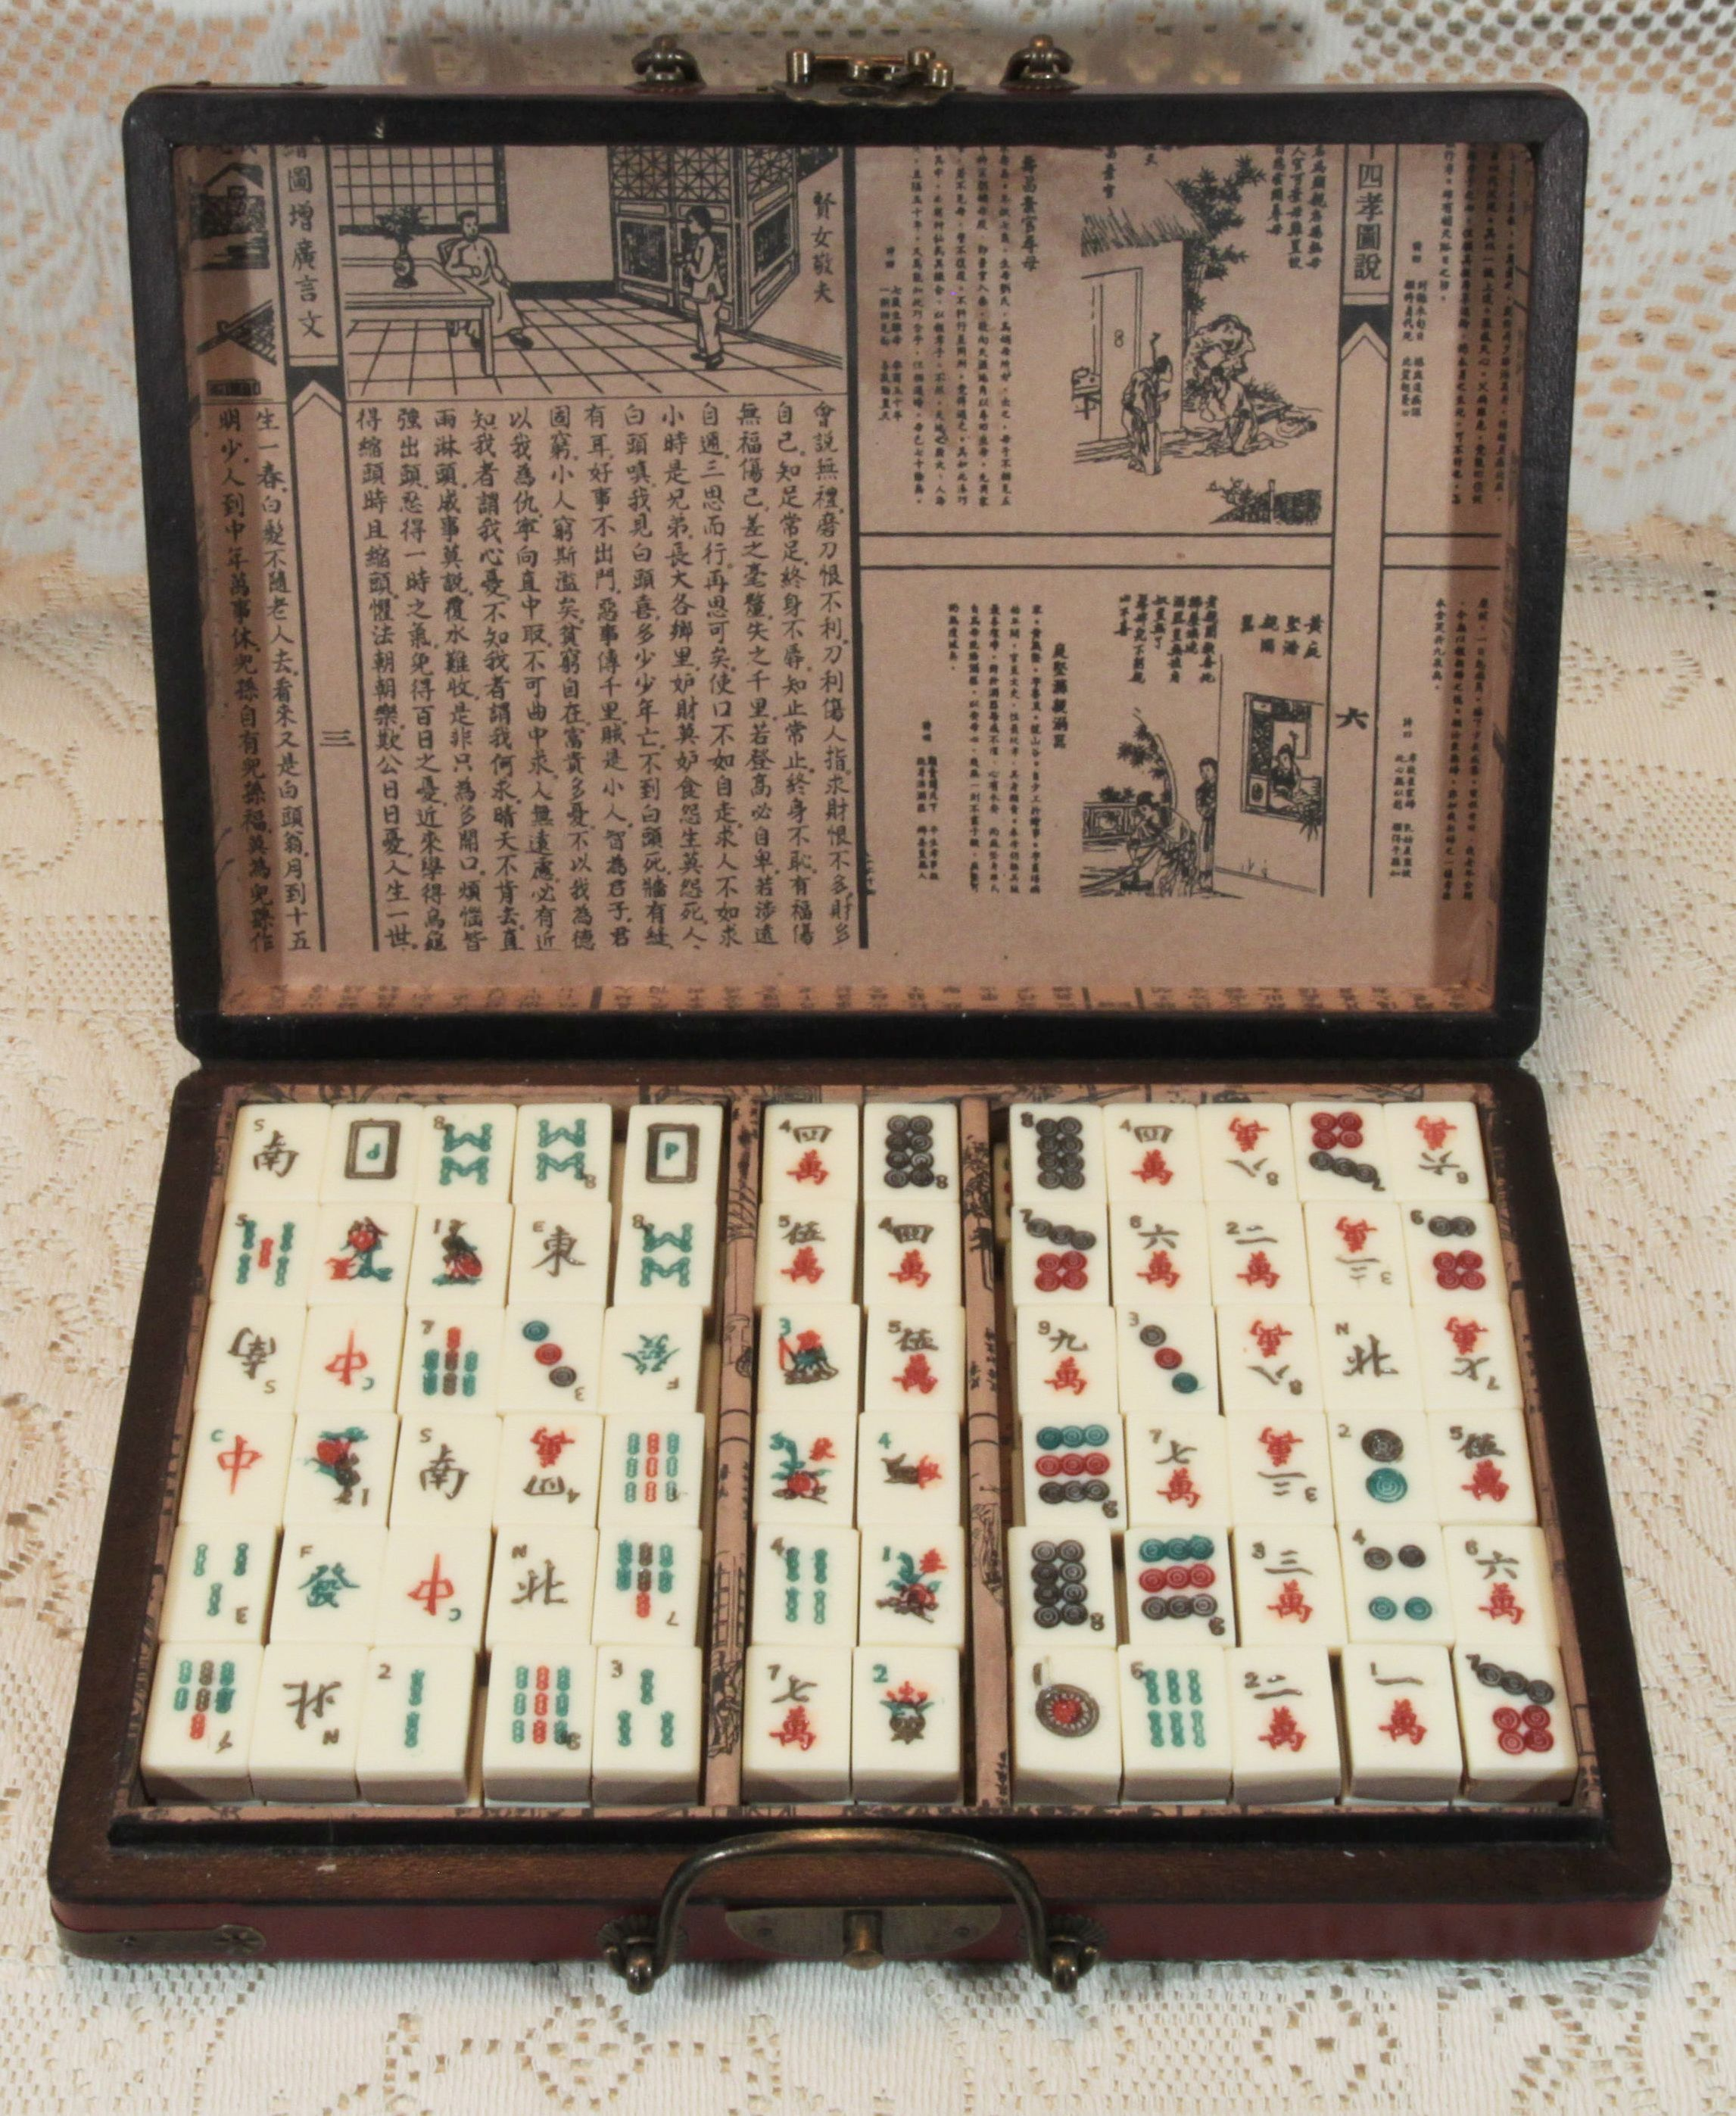 Mahjong, a game that originated in China, is commonly